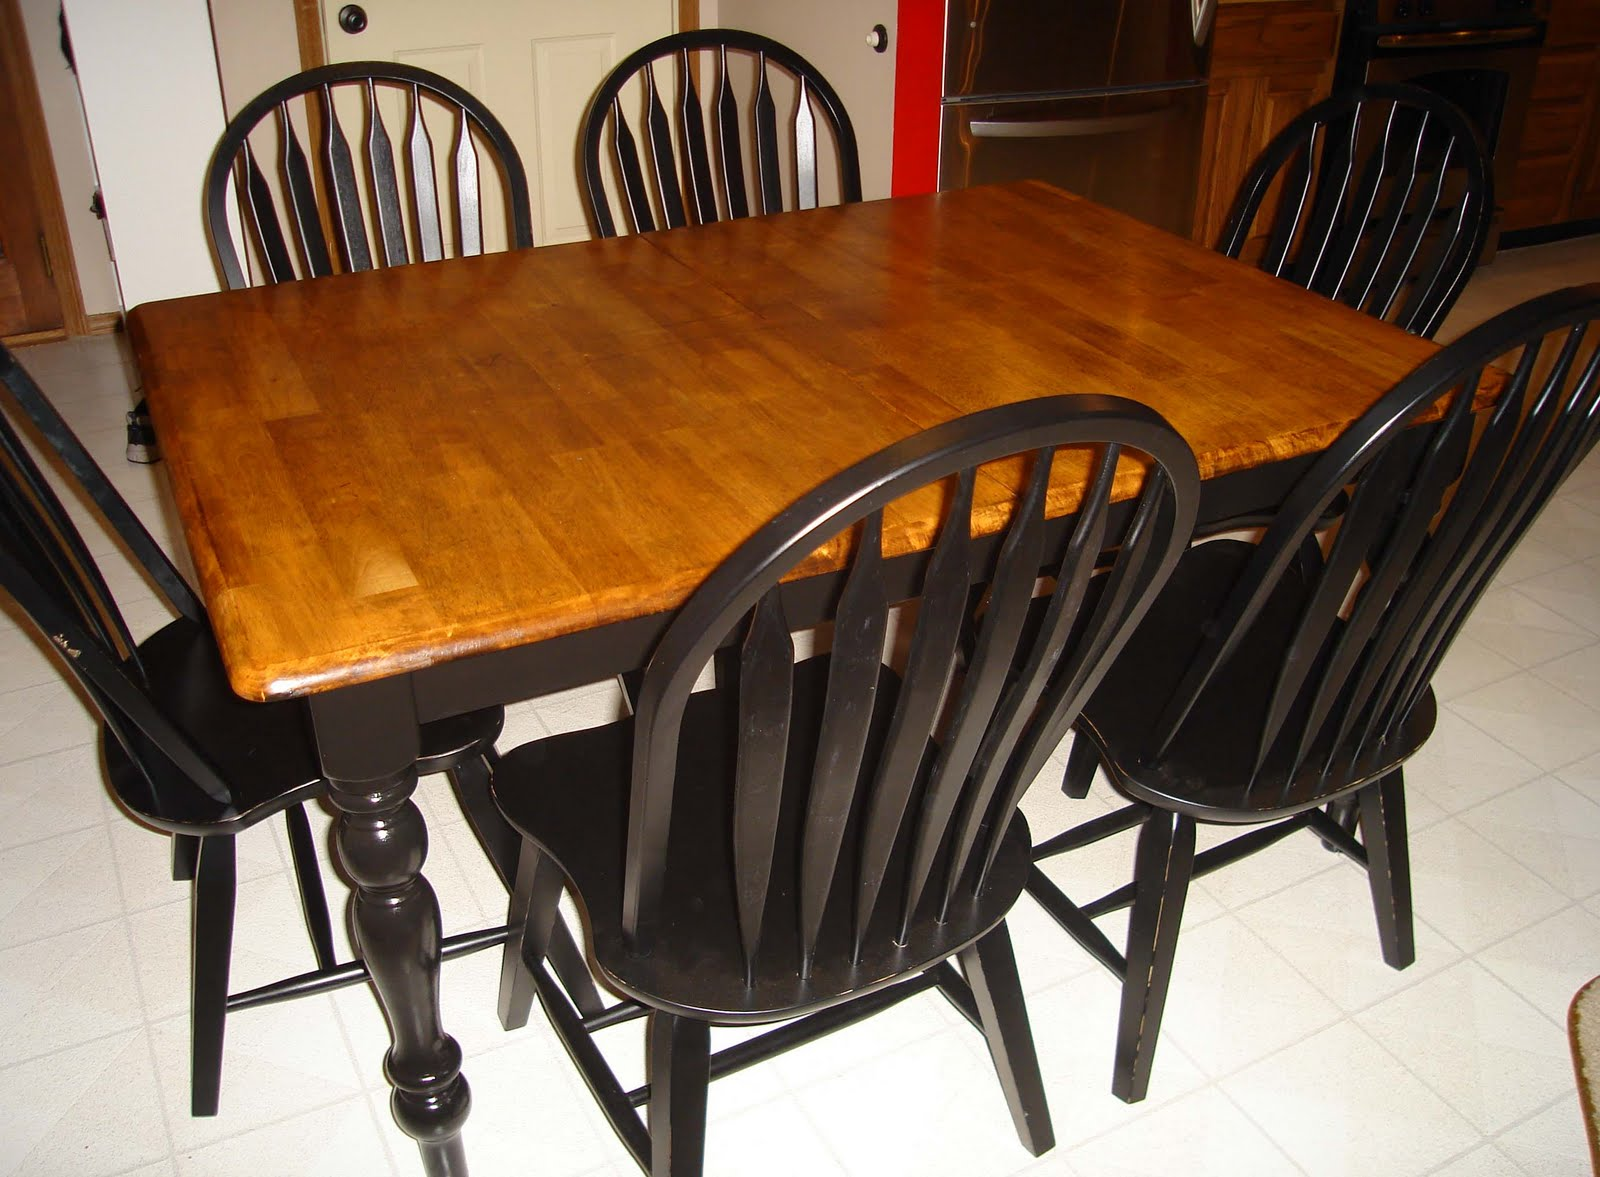 refinishing kitchen table part 2 refinishing kitchen table Refinishing a Kitchen Table Part 2